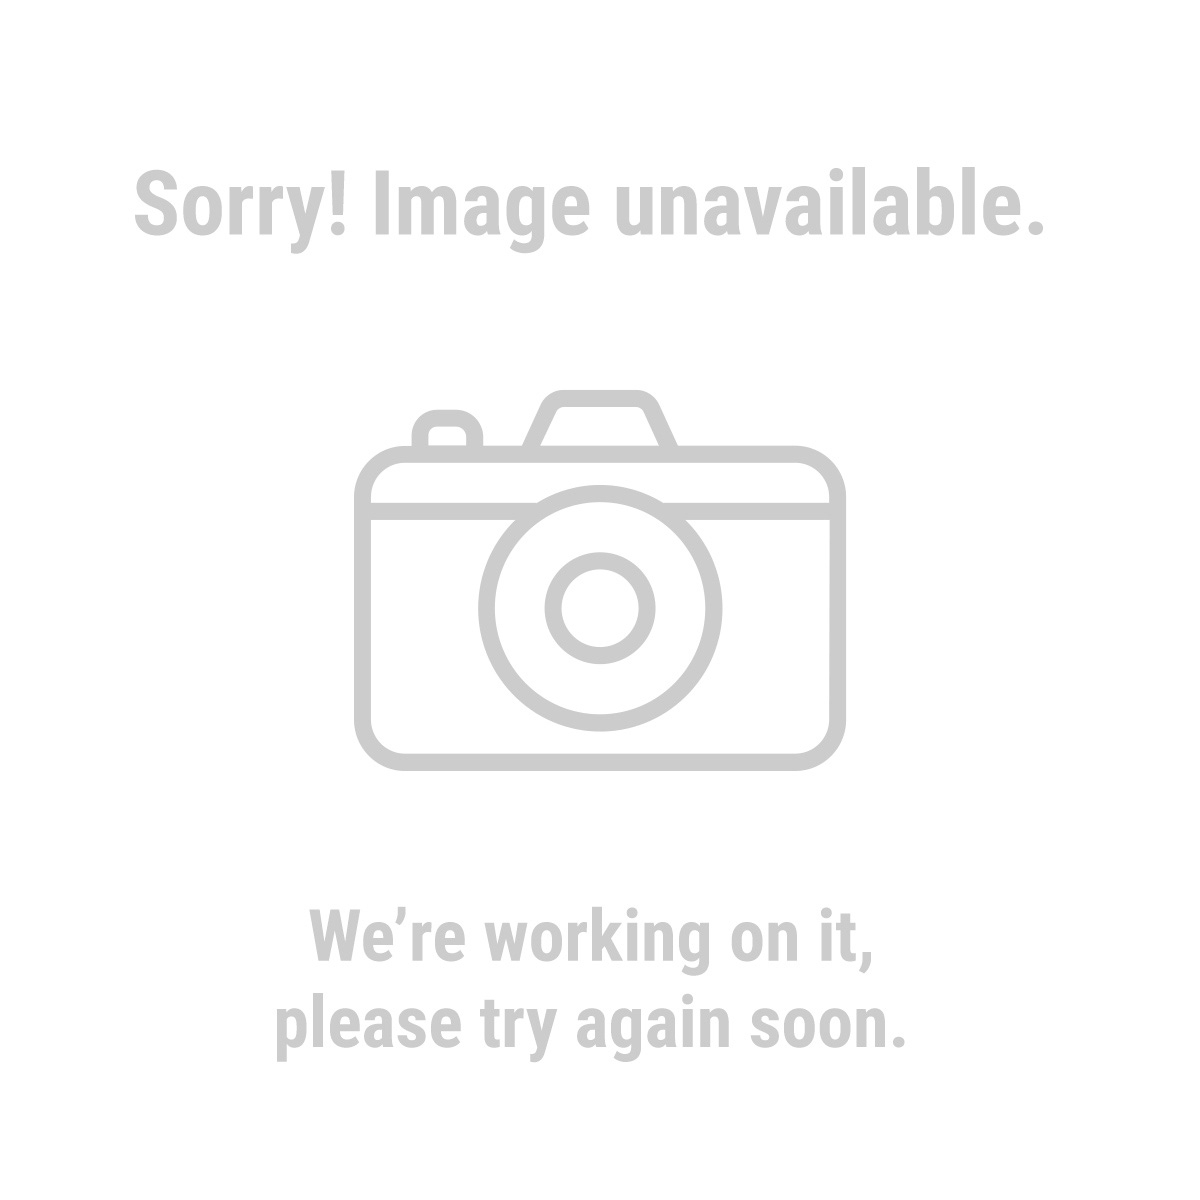 Pittsburgh® Automotive 61522 1/2 Ton Capacity Pickup Truck Crane with Cable Winch